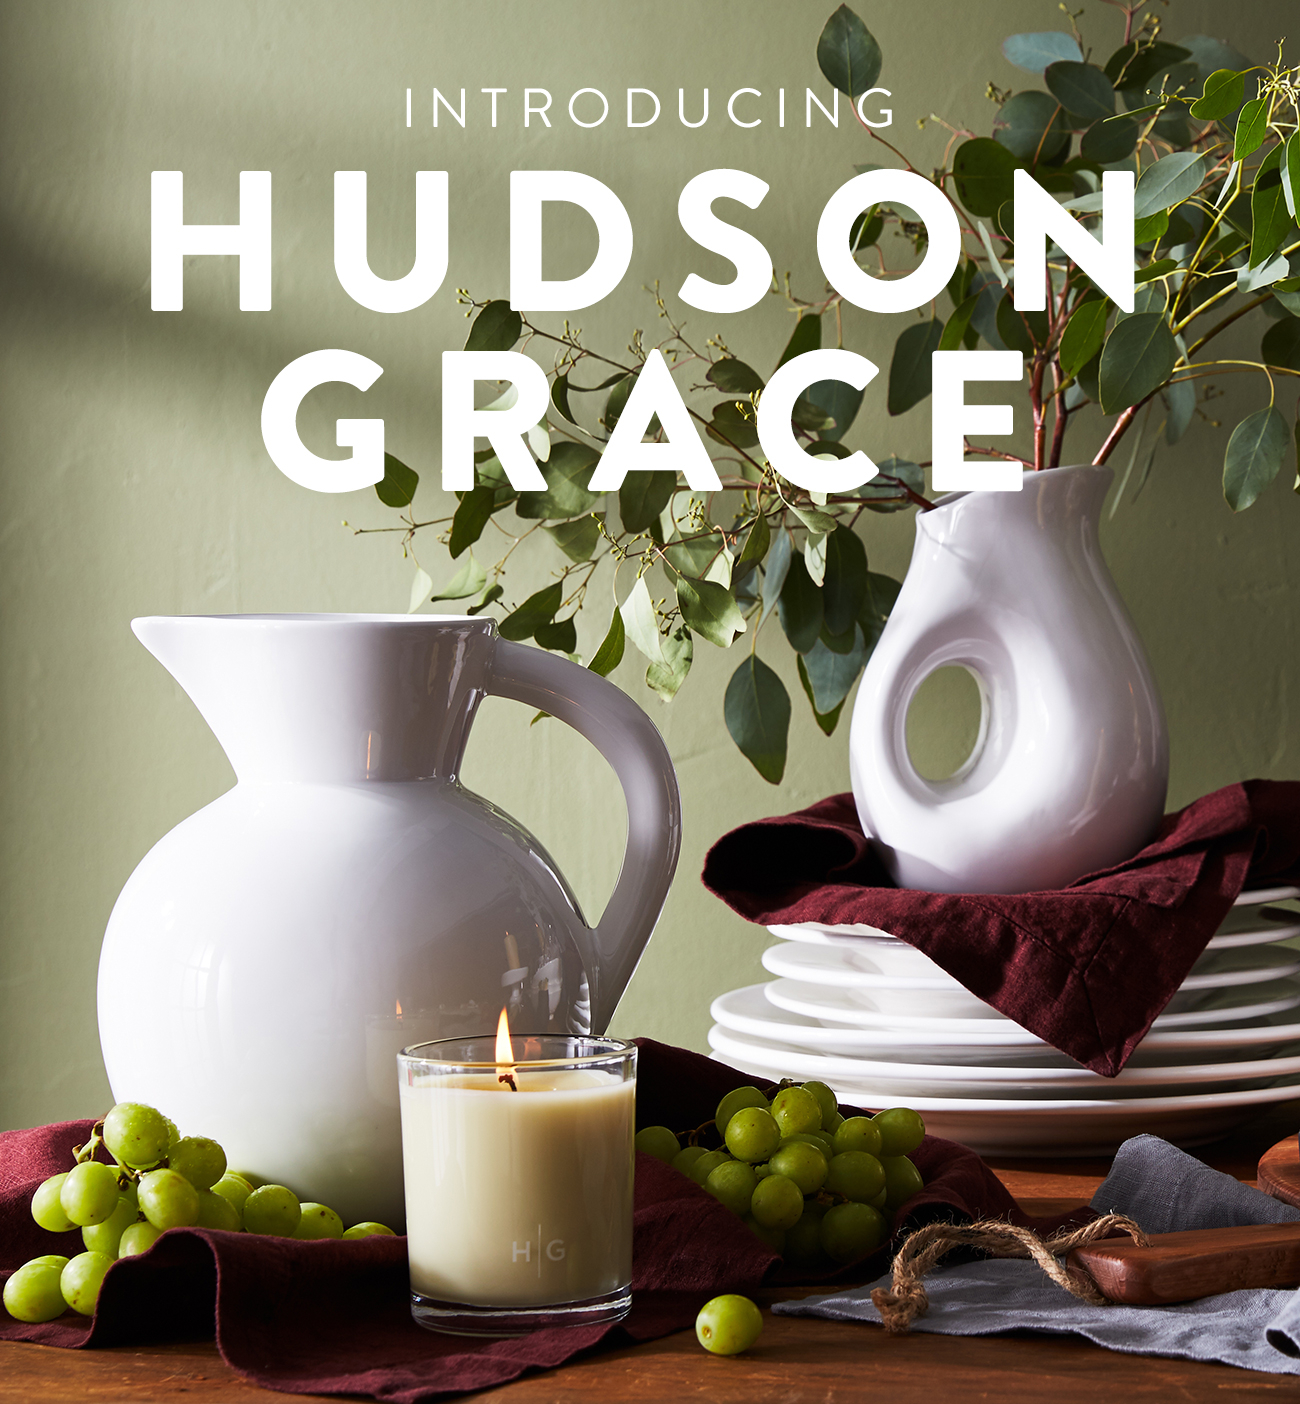 Introducing Hudson Grace